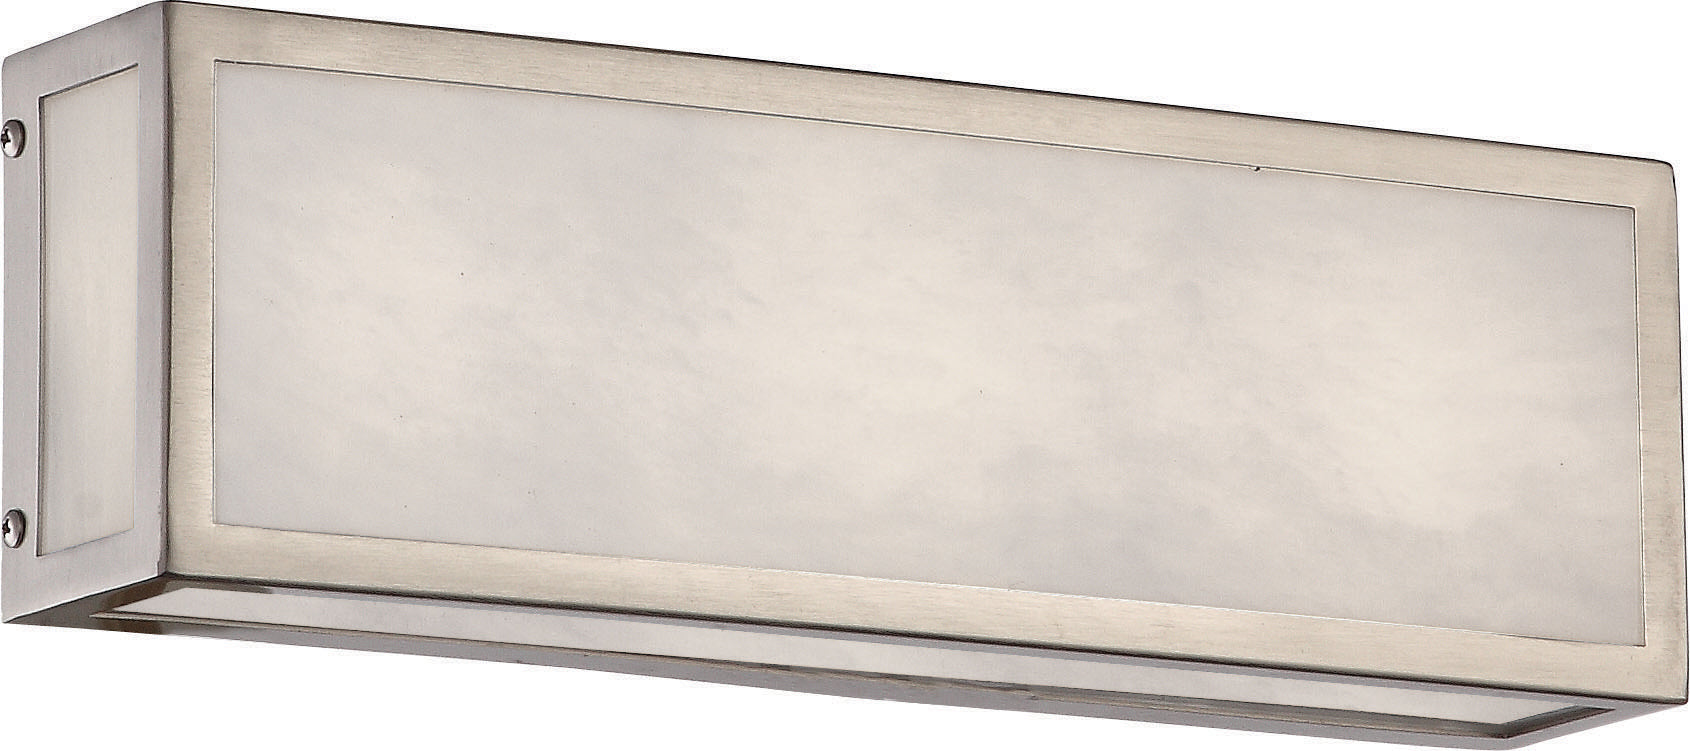 "Nuvo Crate 12"" LED Vanity Marbleized Acrylic Panels in Brushed Nickel Finish"